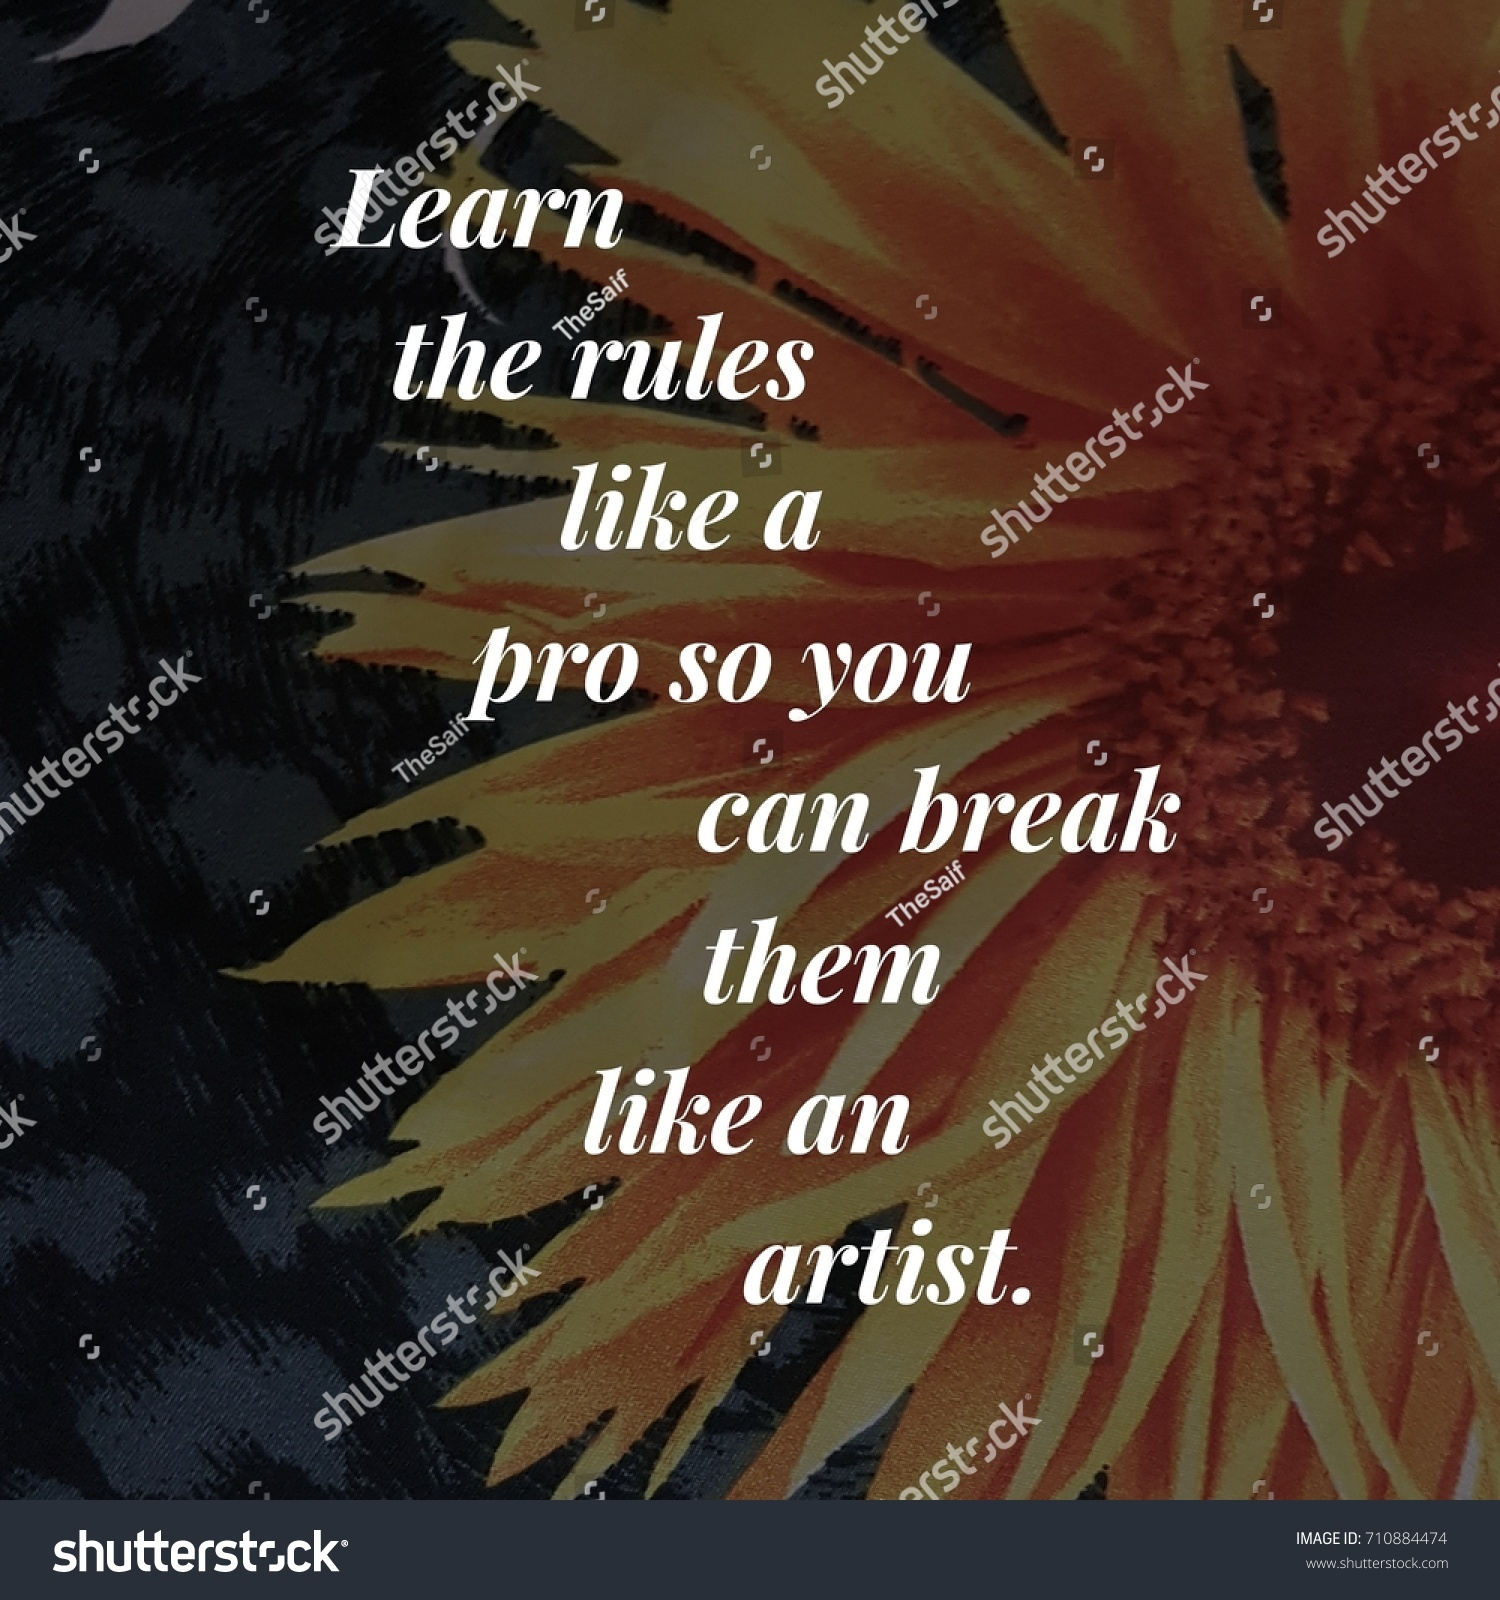 Inspiring Quotes On Life And Success Inspirational Quote About Life Success Stock Photo 710884474